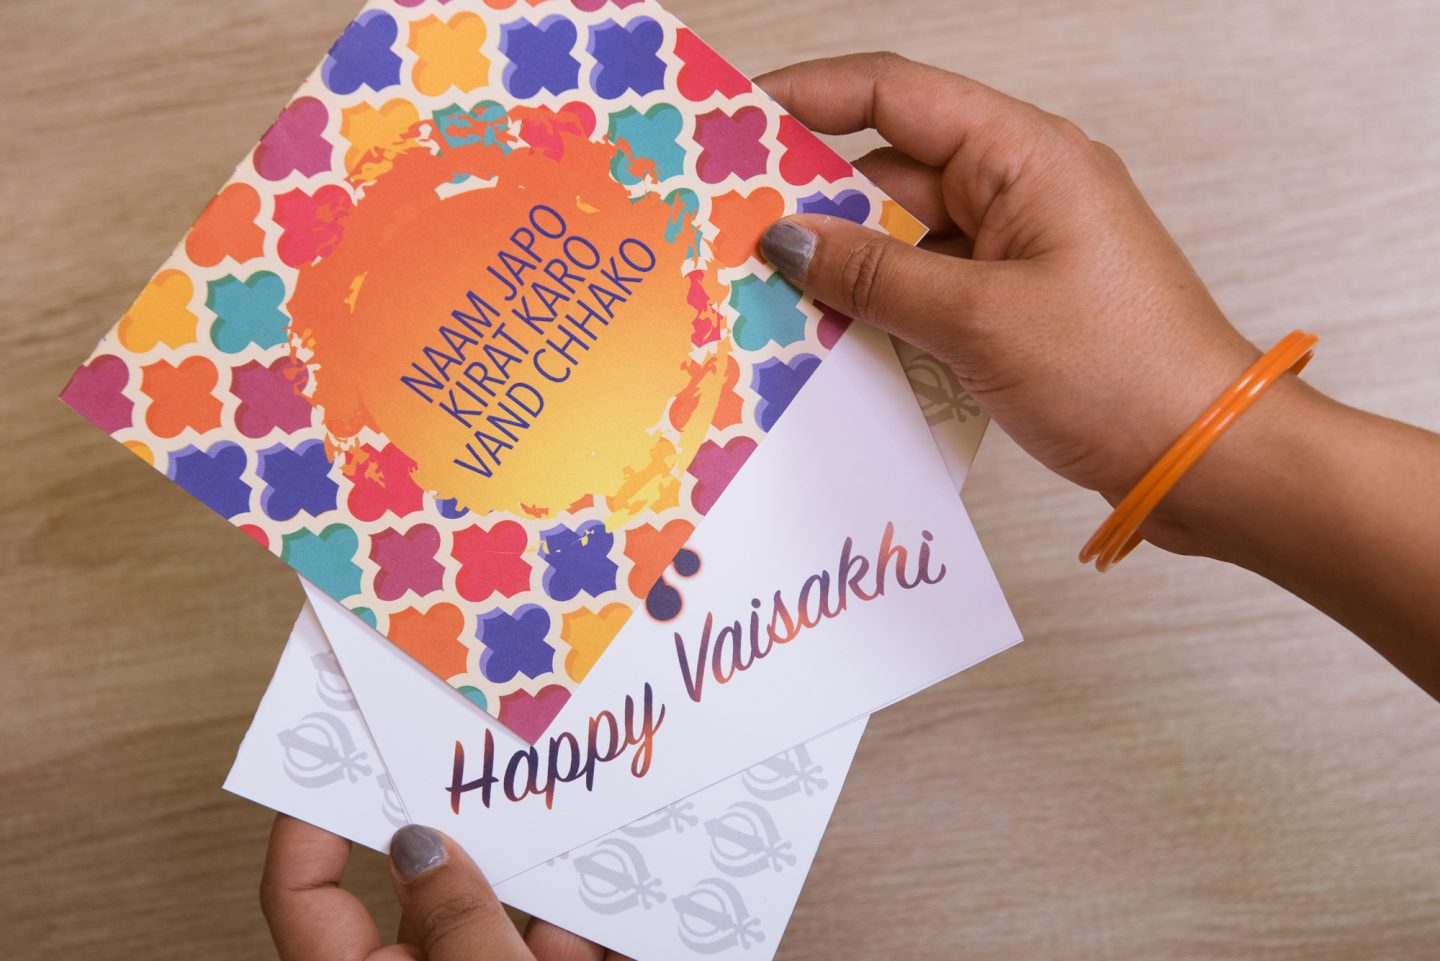 Vaisakhi Cards Activities | Pink Chai LIving